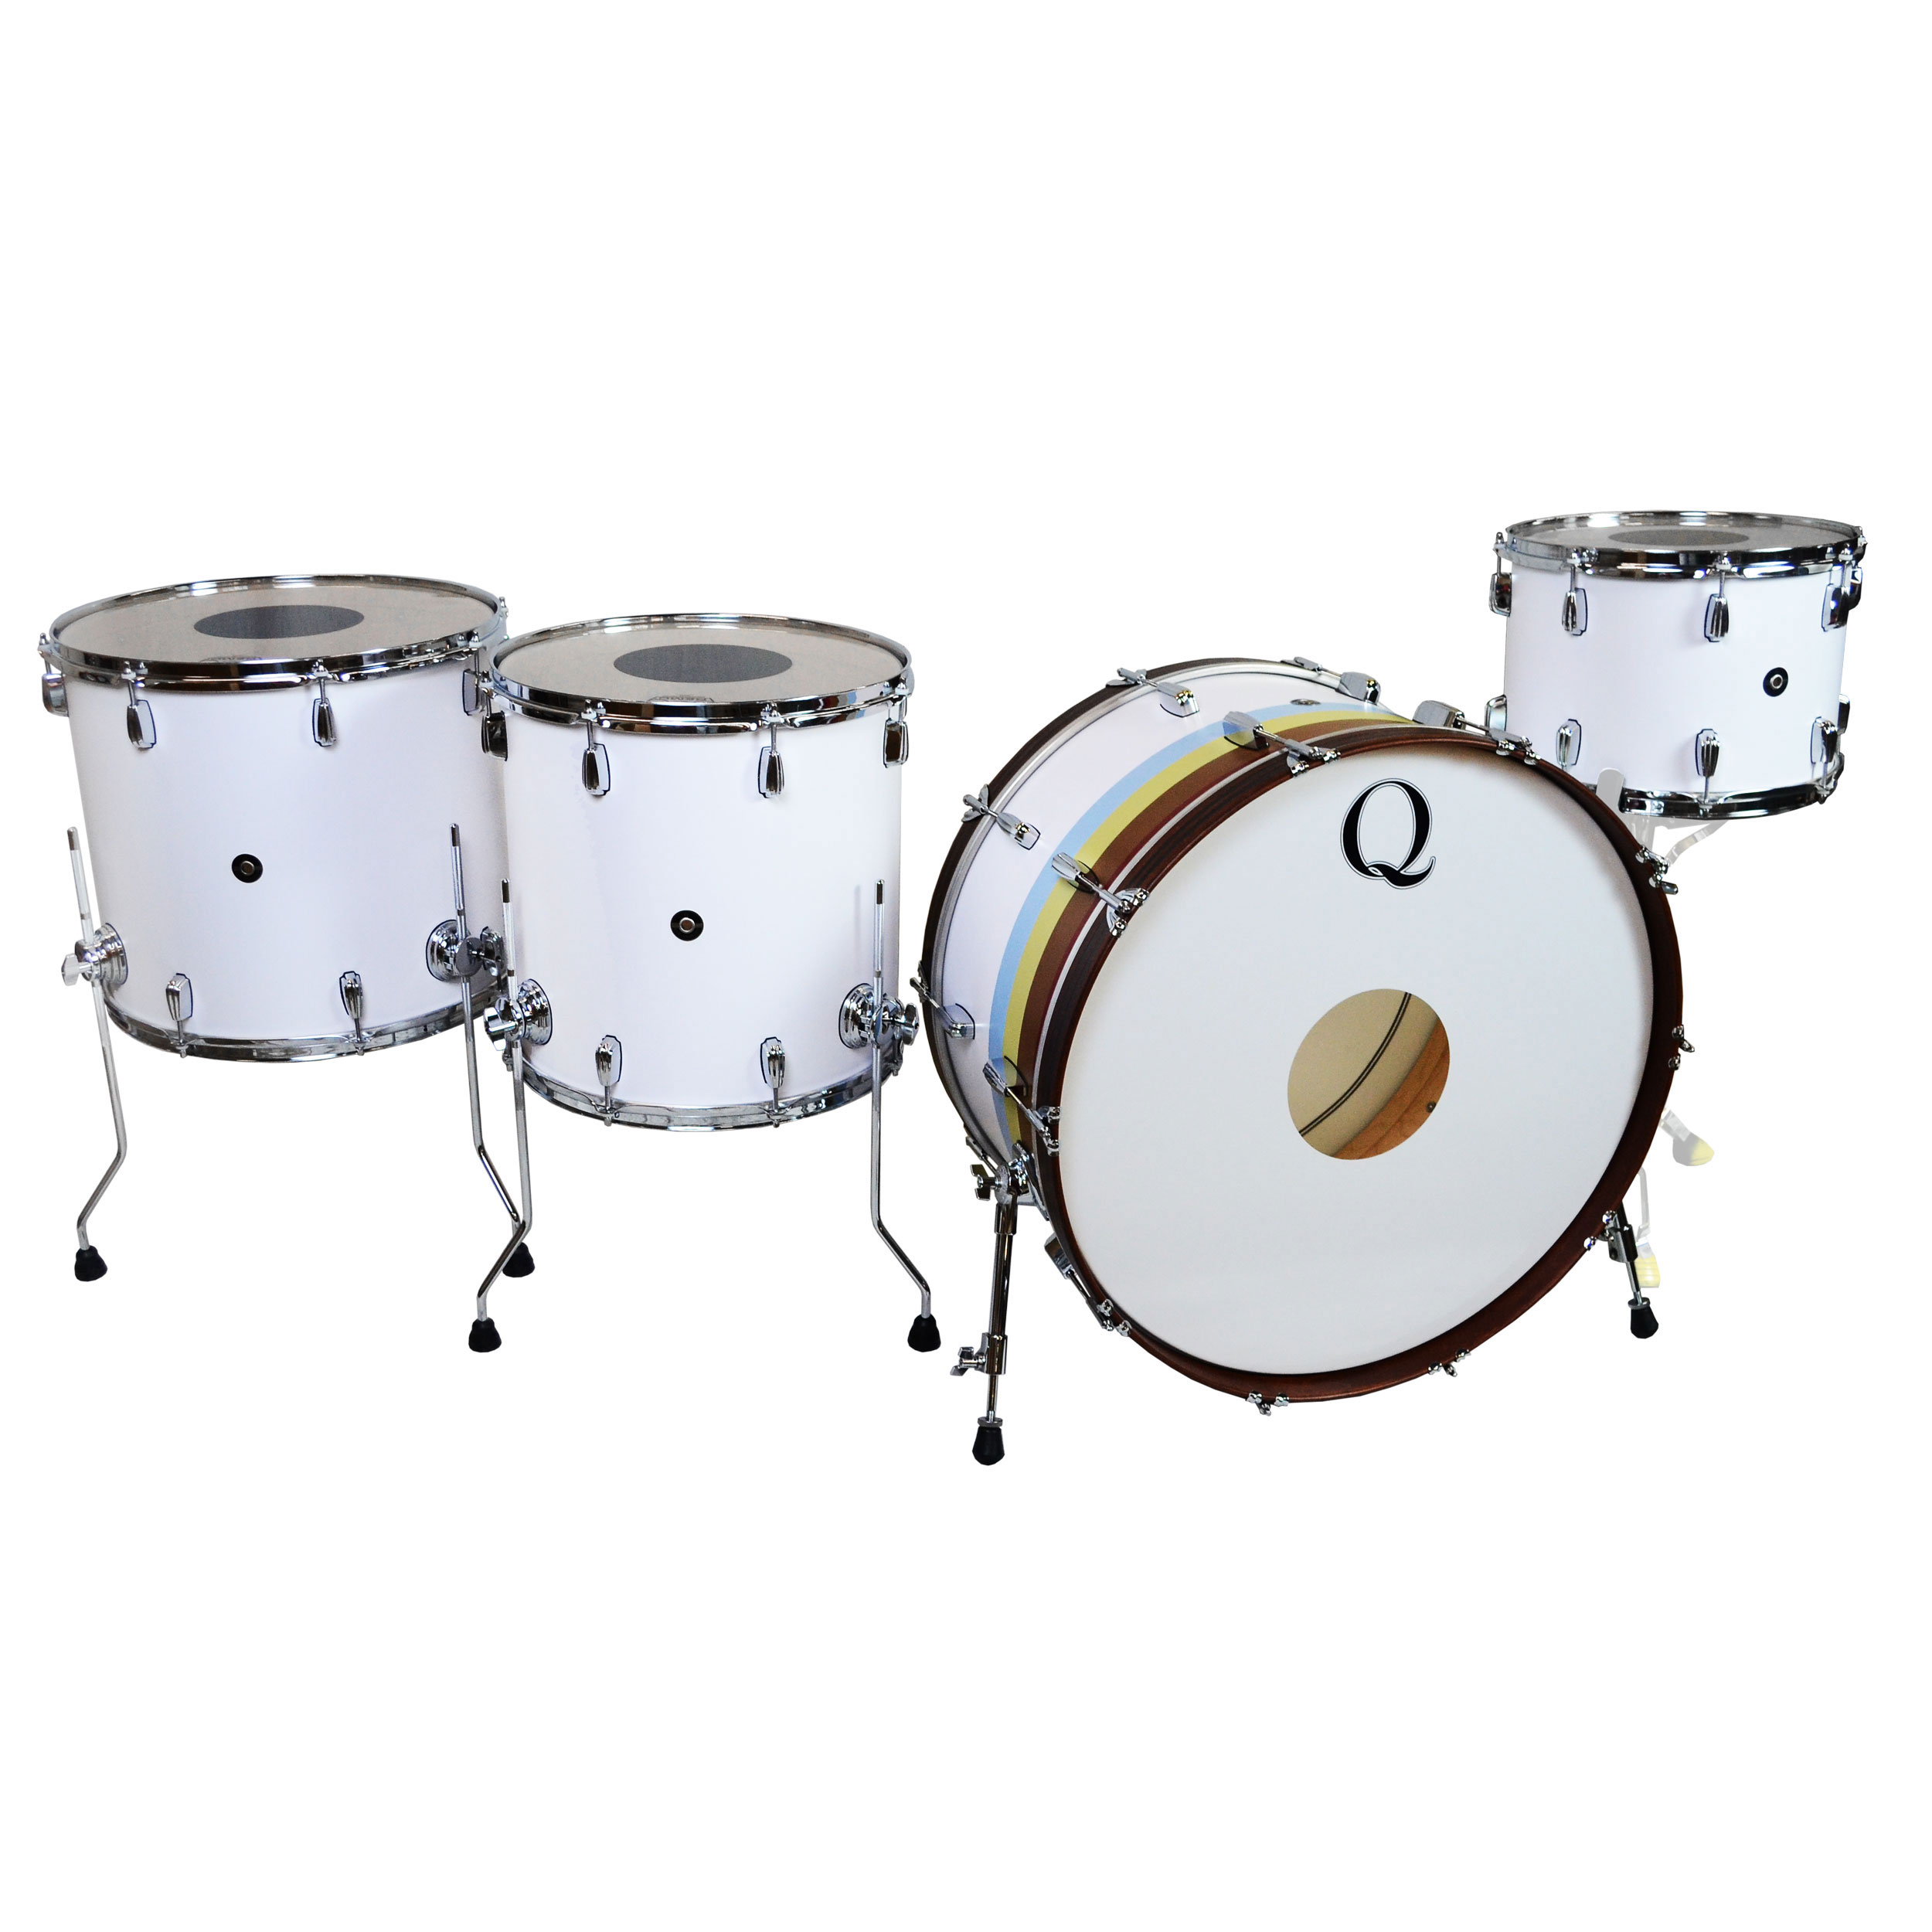 """Q Drum Co. Maple 4-Piece Drum Set Shell Pack (26"""" Bass, 14/16/18"""" Toms) in Flat White & 1974 Stripes"""